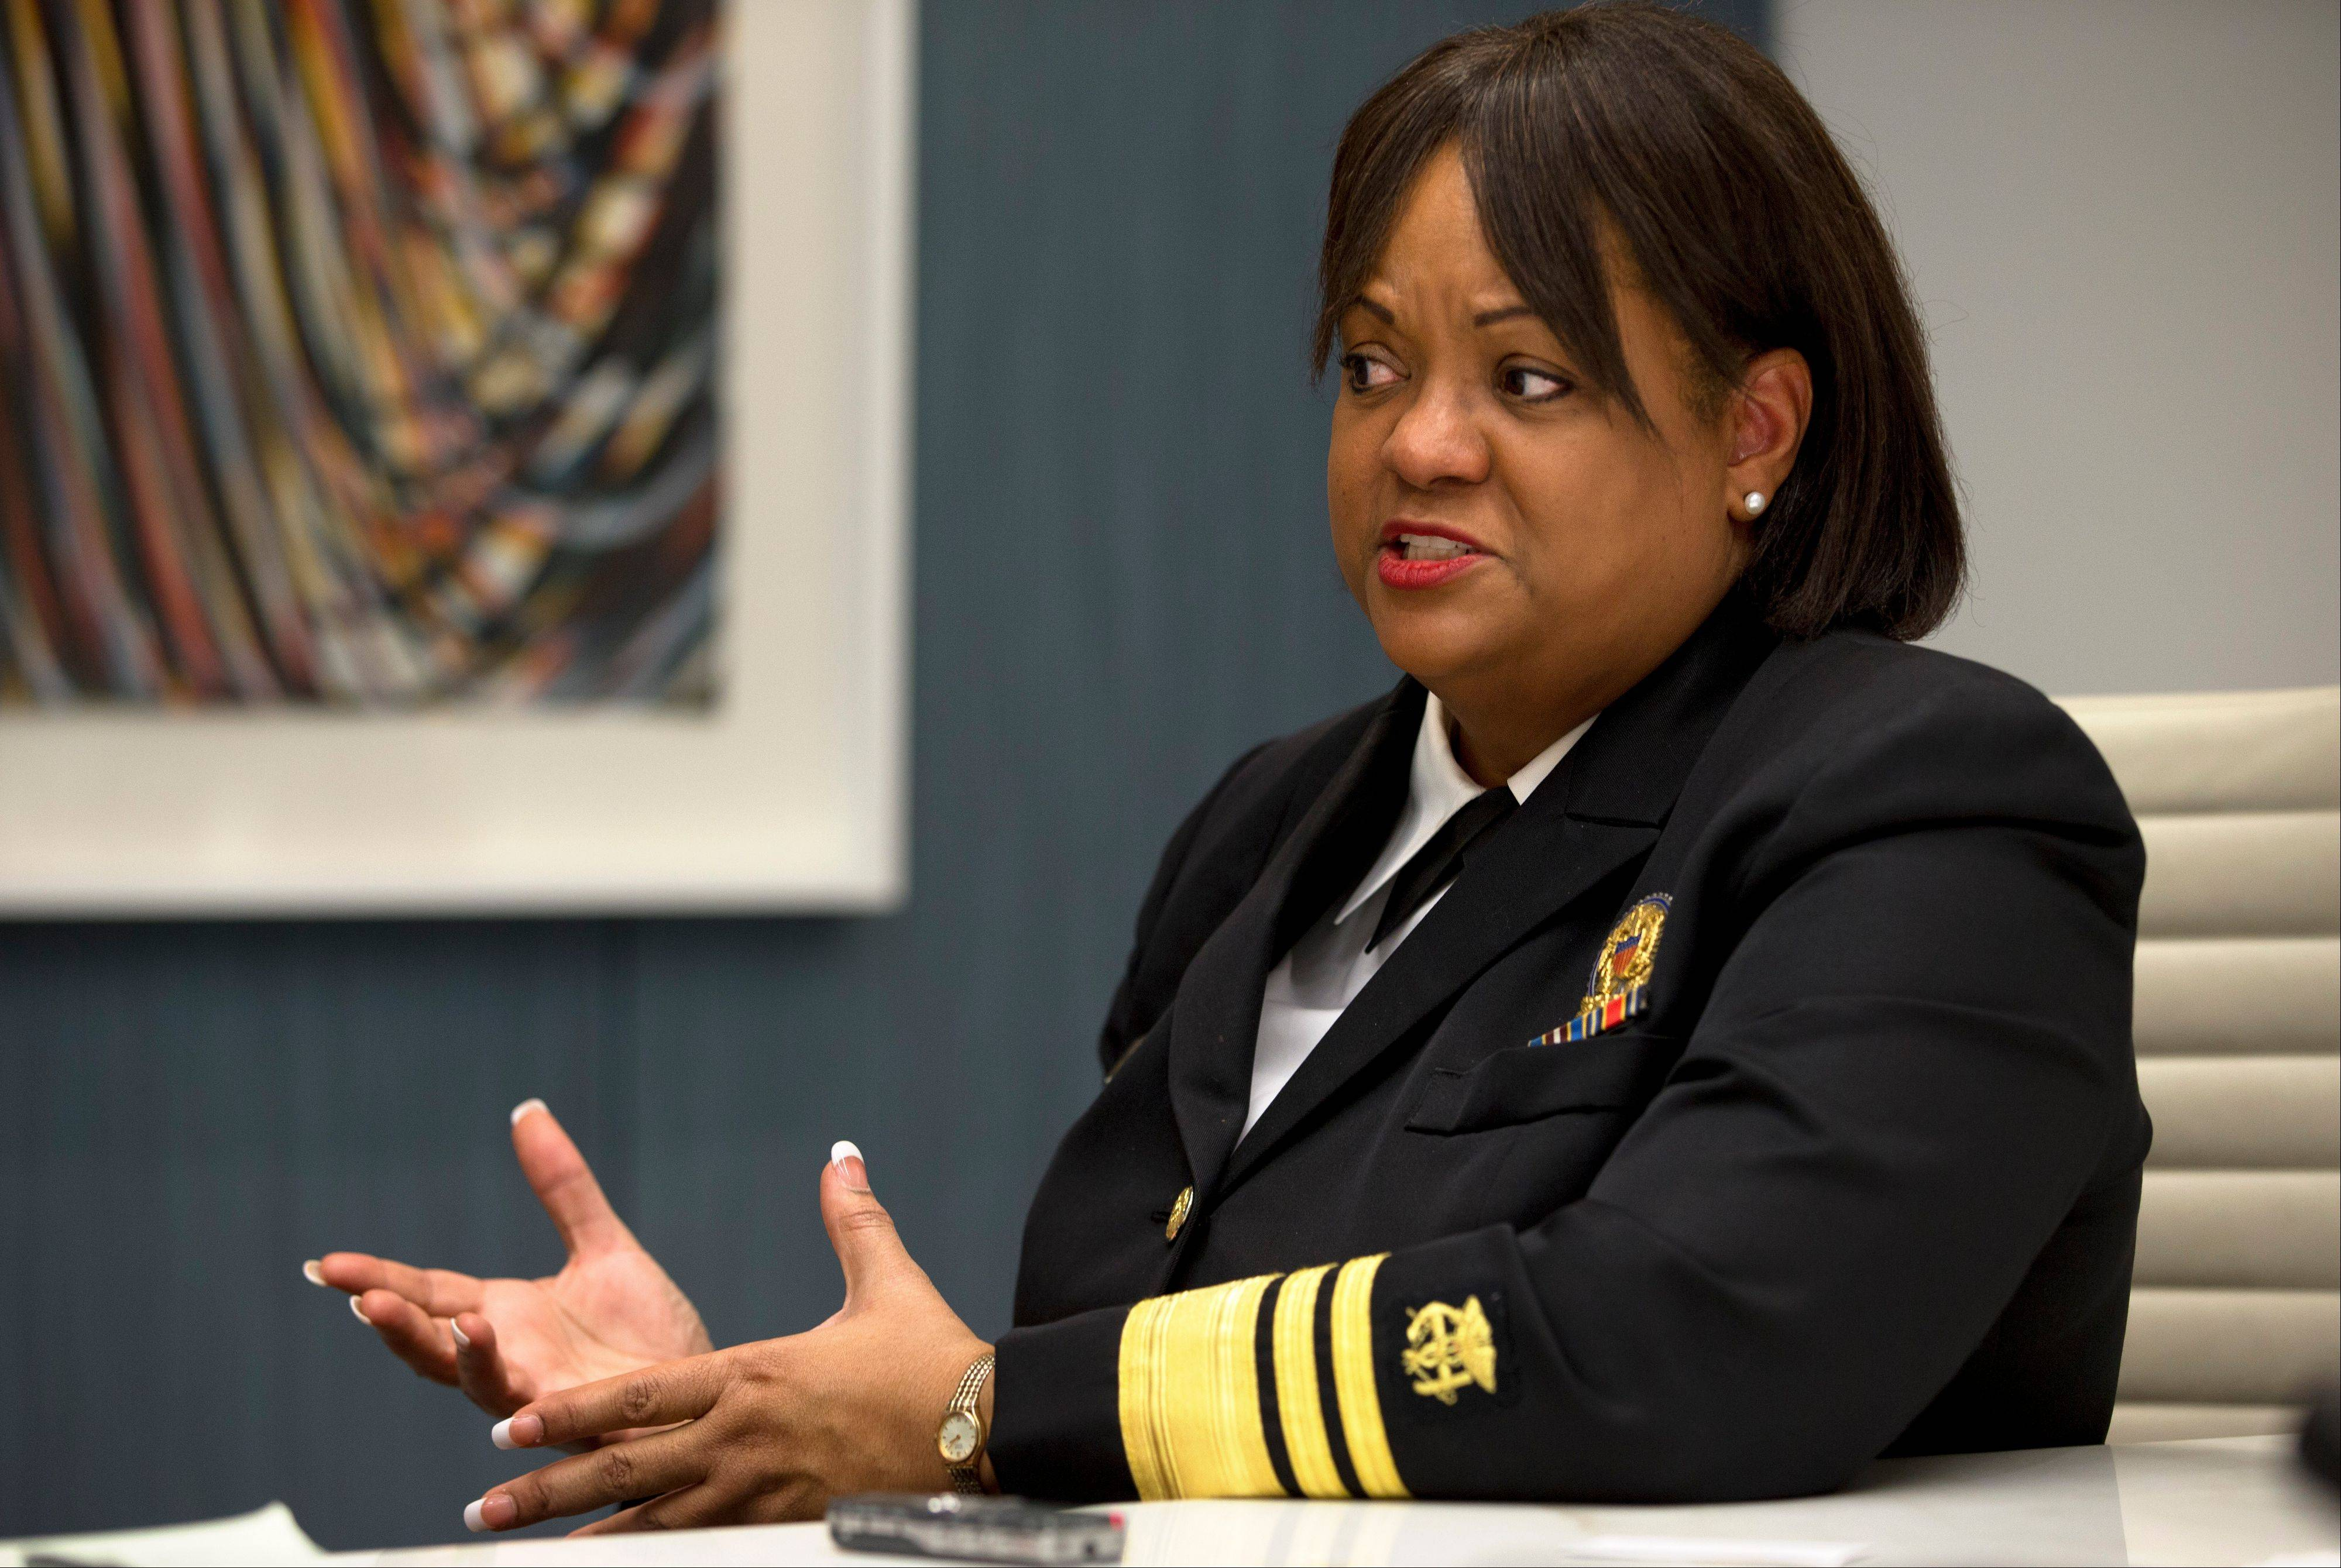 Associated PressRegina Benjamin, Surgeon General of the United States, is interviewed Wednesday after speaking about health disparities in Washington. African-American women have the highest rate of obesity of any group of Americans. Four out of five black women have a body mass index above 25 percent, the threshold for being overweight or obese, according to the Centers for Disease Control and Prevention.